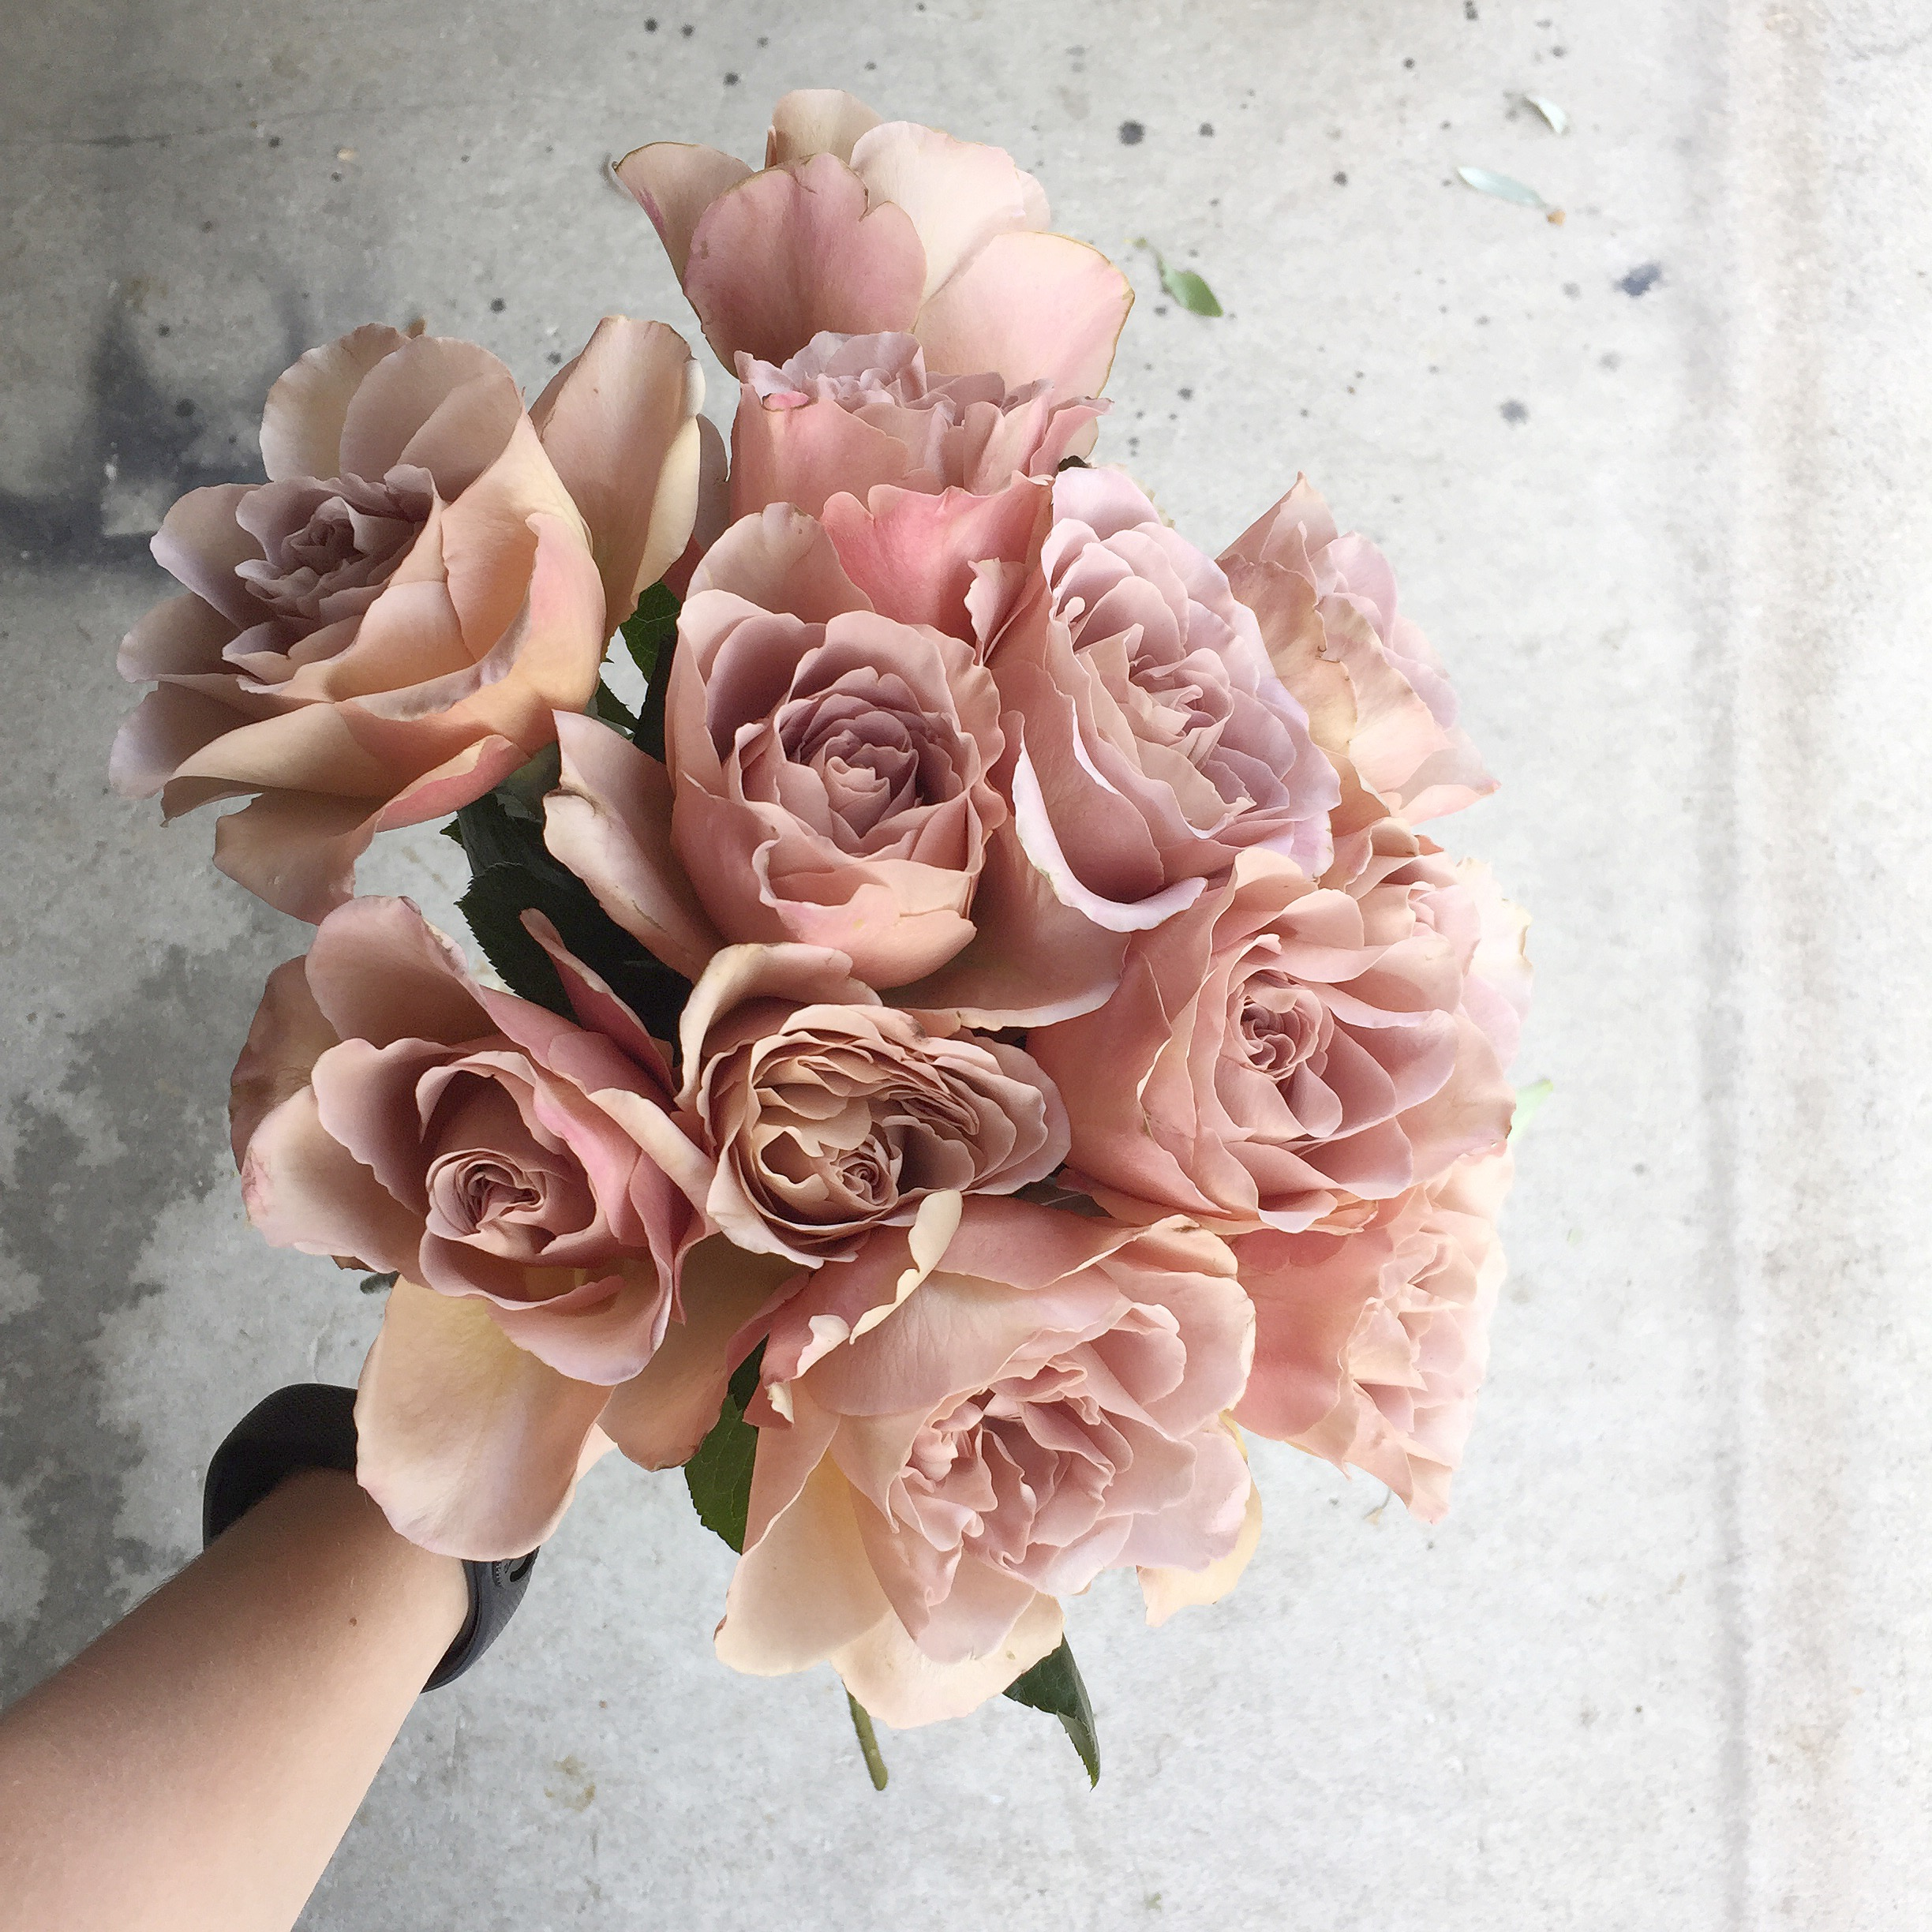 Dusty Rose Wedding Flowers - 2018 Wedding Trends